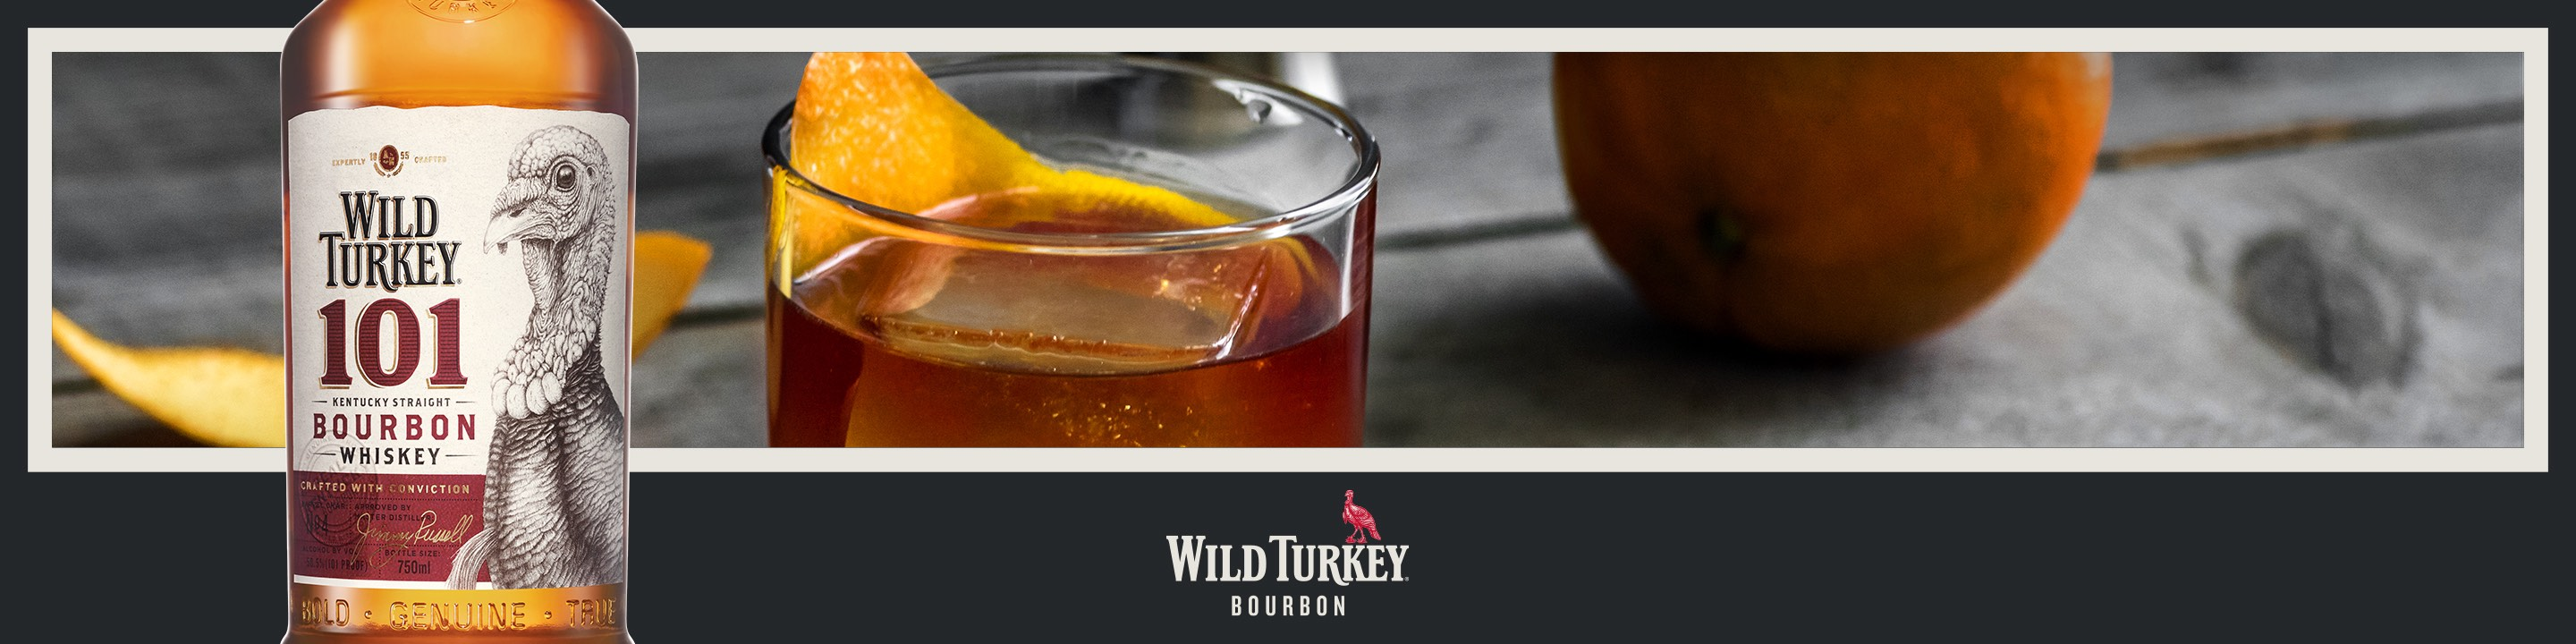 """Uncompromising since 1855, Wild Turkey is the Real Kentucky Straight Bourbon Whiskey. Using only natural processes, Wild Turkey products are aged in new American white oak barrels with the deepest #4 """"alligator"""" char, giving them a rich russet color while carrying full flavors of vanilla and smooth caramel. The father-son Master Distiller team of Jimmy Russell and Eddie Russell have more than 90 years combined experience and with that experience comes the knowledge that they make their bourbons and ryes the right way, every time. Complementing the classic Wild Turkey 101 Bourbon are Wild Turkey Bourbon and Rye, Rare Breed, Kentucky Spirit, Forgiven and Spiced. Wild Turkey is a true American icon and has won many U.S. and International awards, including the American Tasting Award of Excellence, and most recently the Double Gold Medal at the San Francisco World Spirits Competition. Buy Wild Turkey online now from nearby liquor stores via Minibar Delivery."""